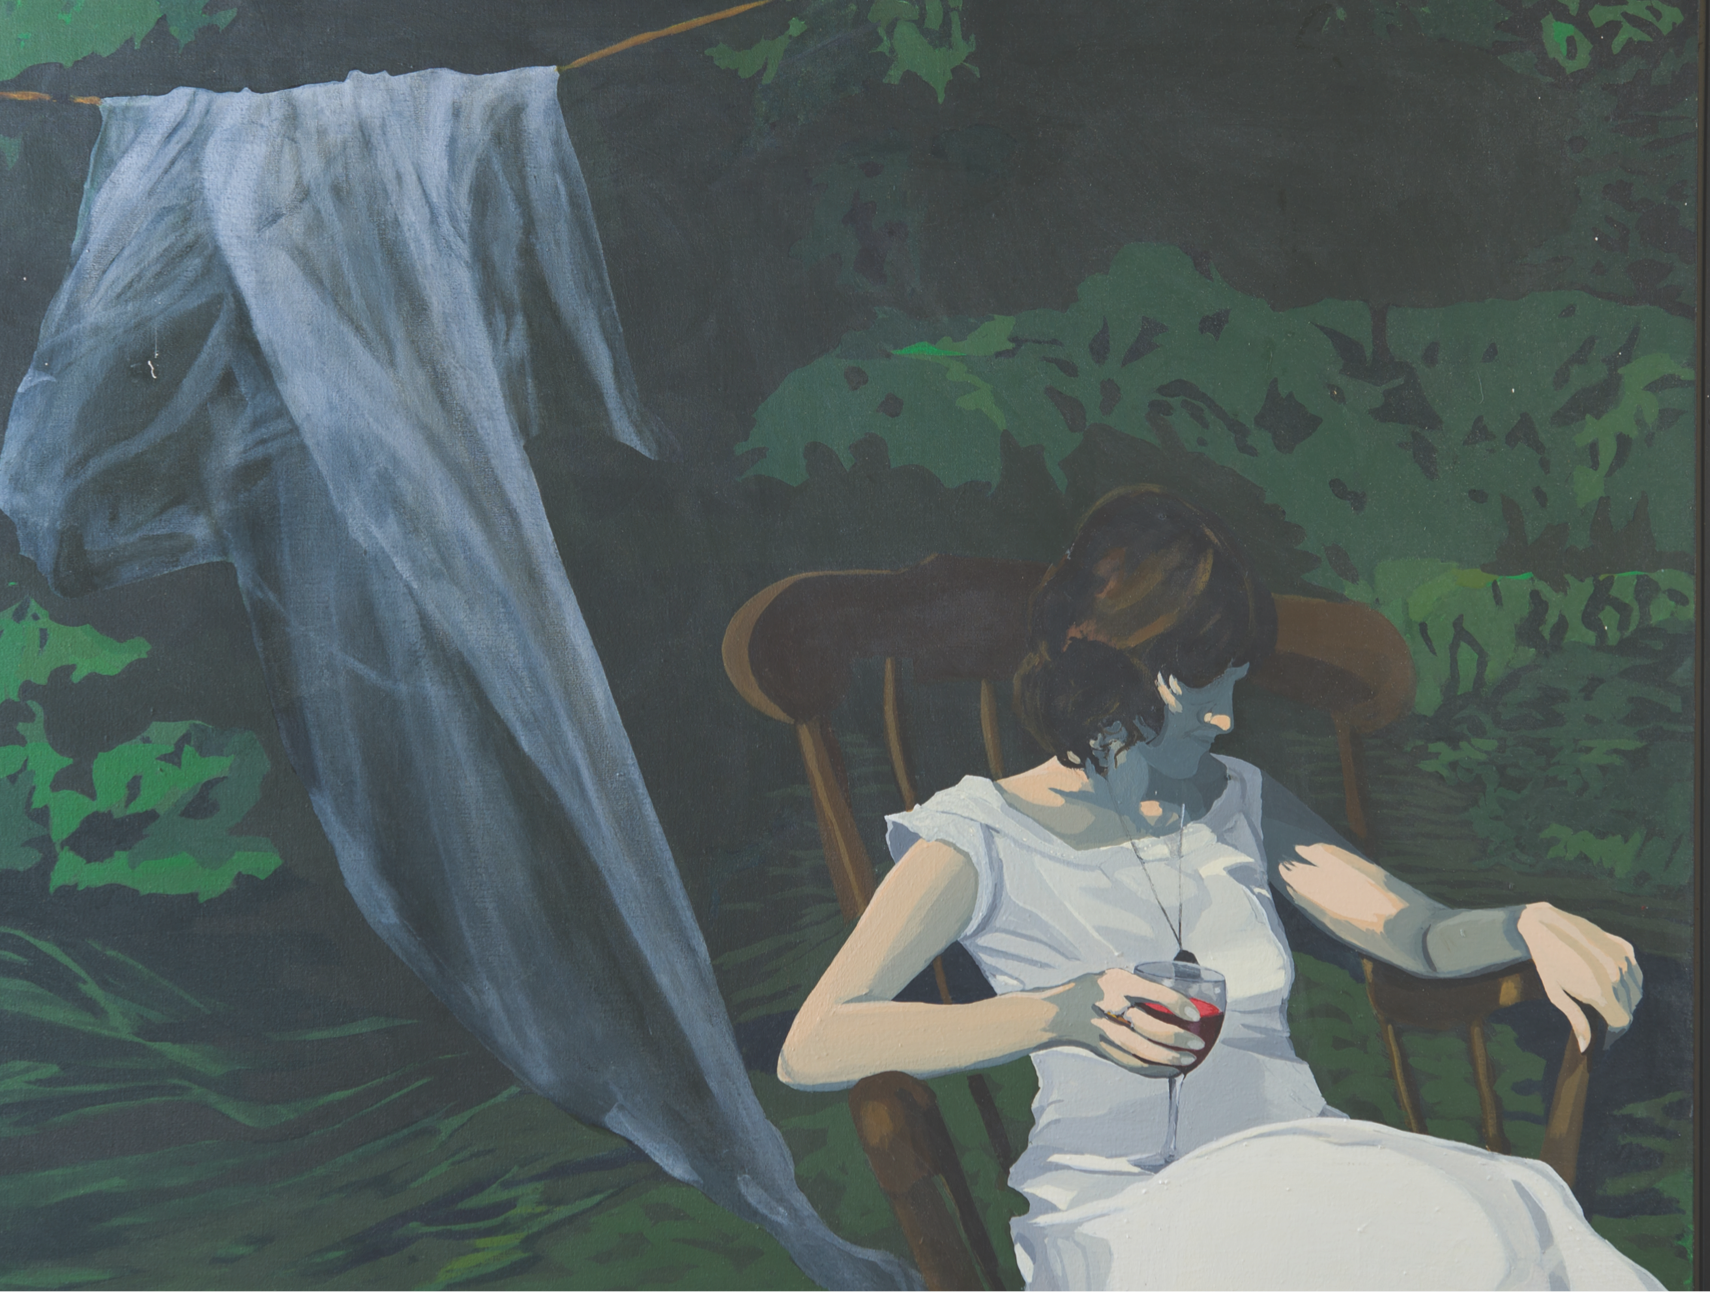 Stylizing image of woman sitting in a rocking chair with a white dress